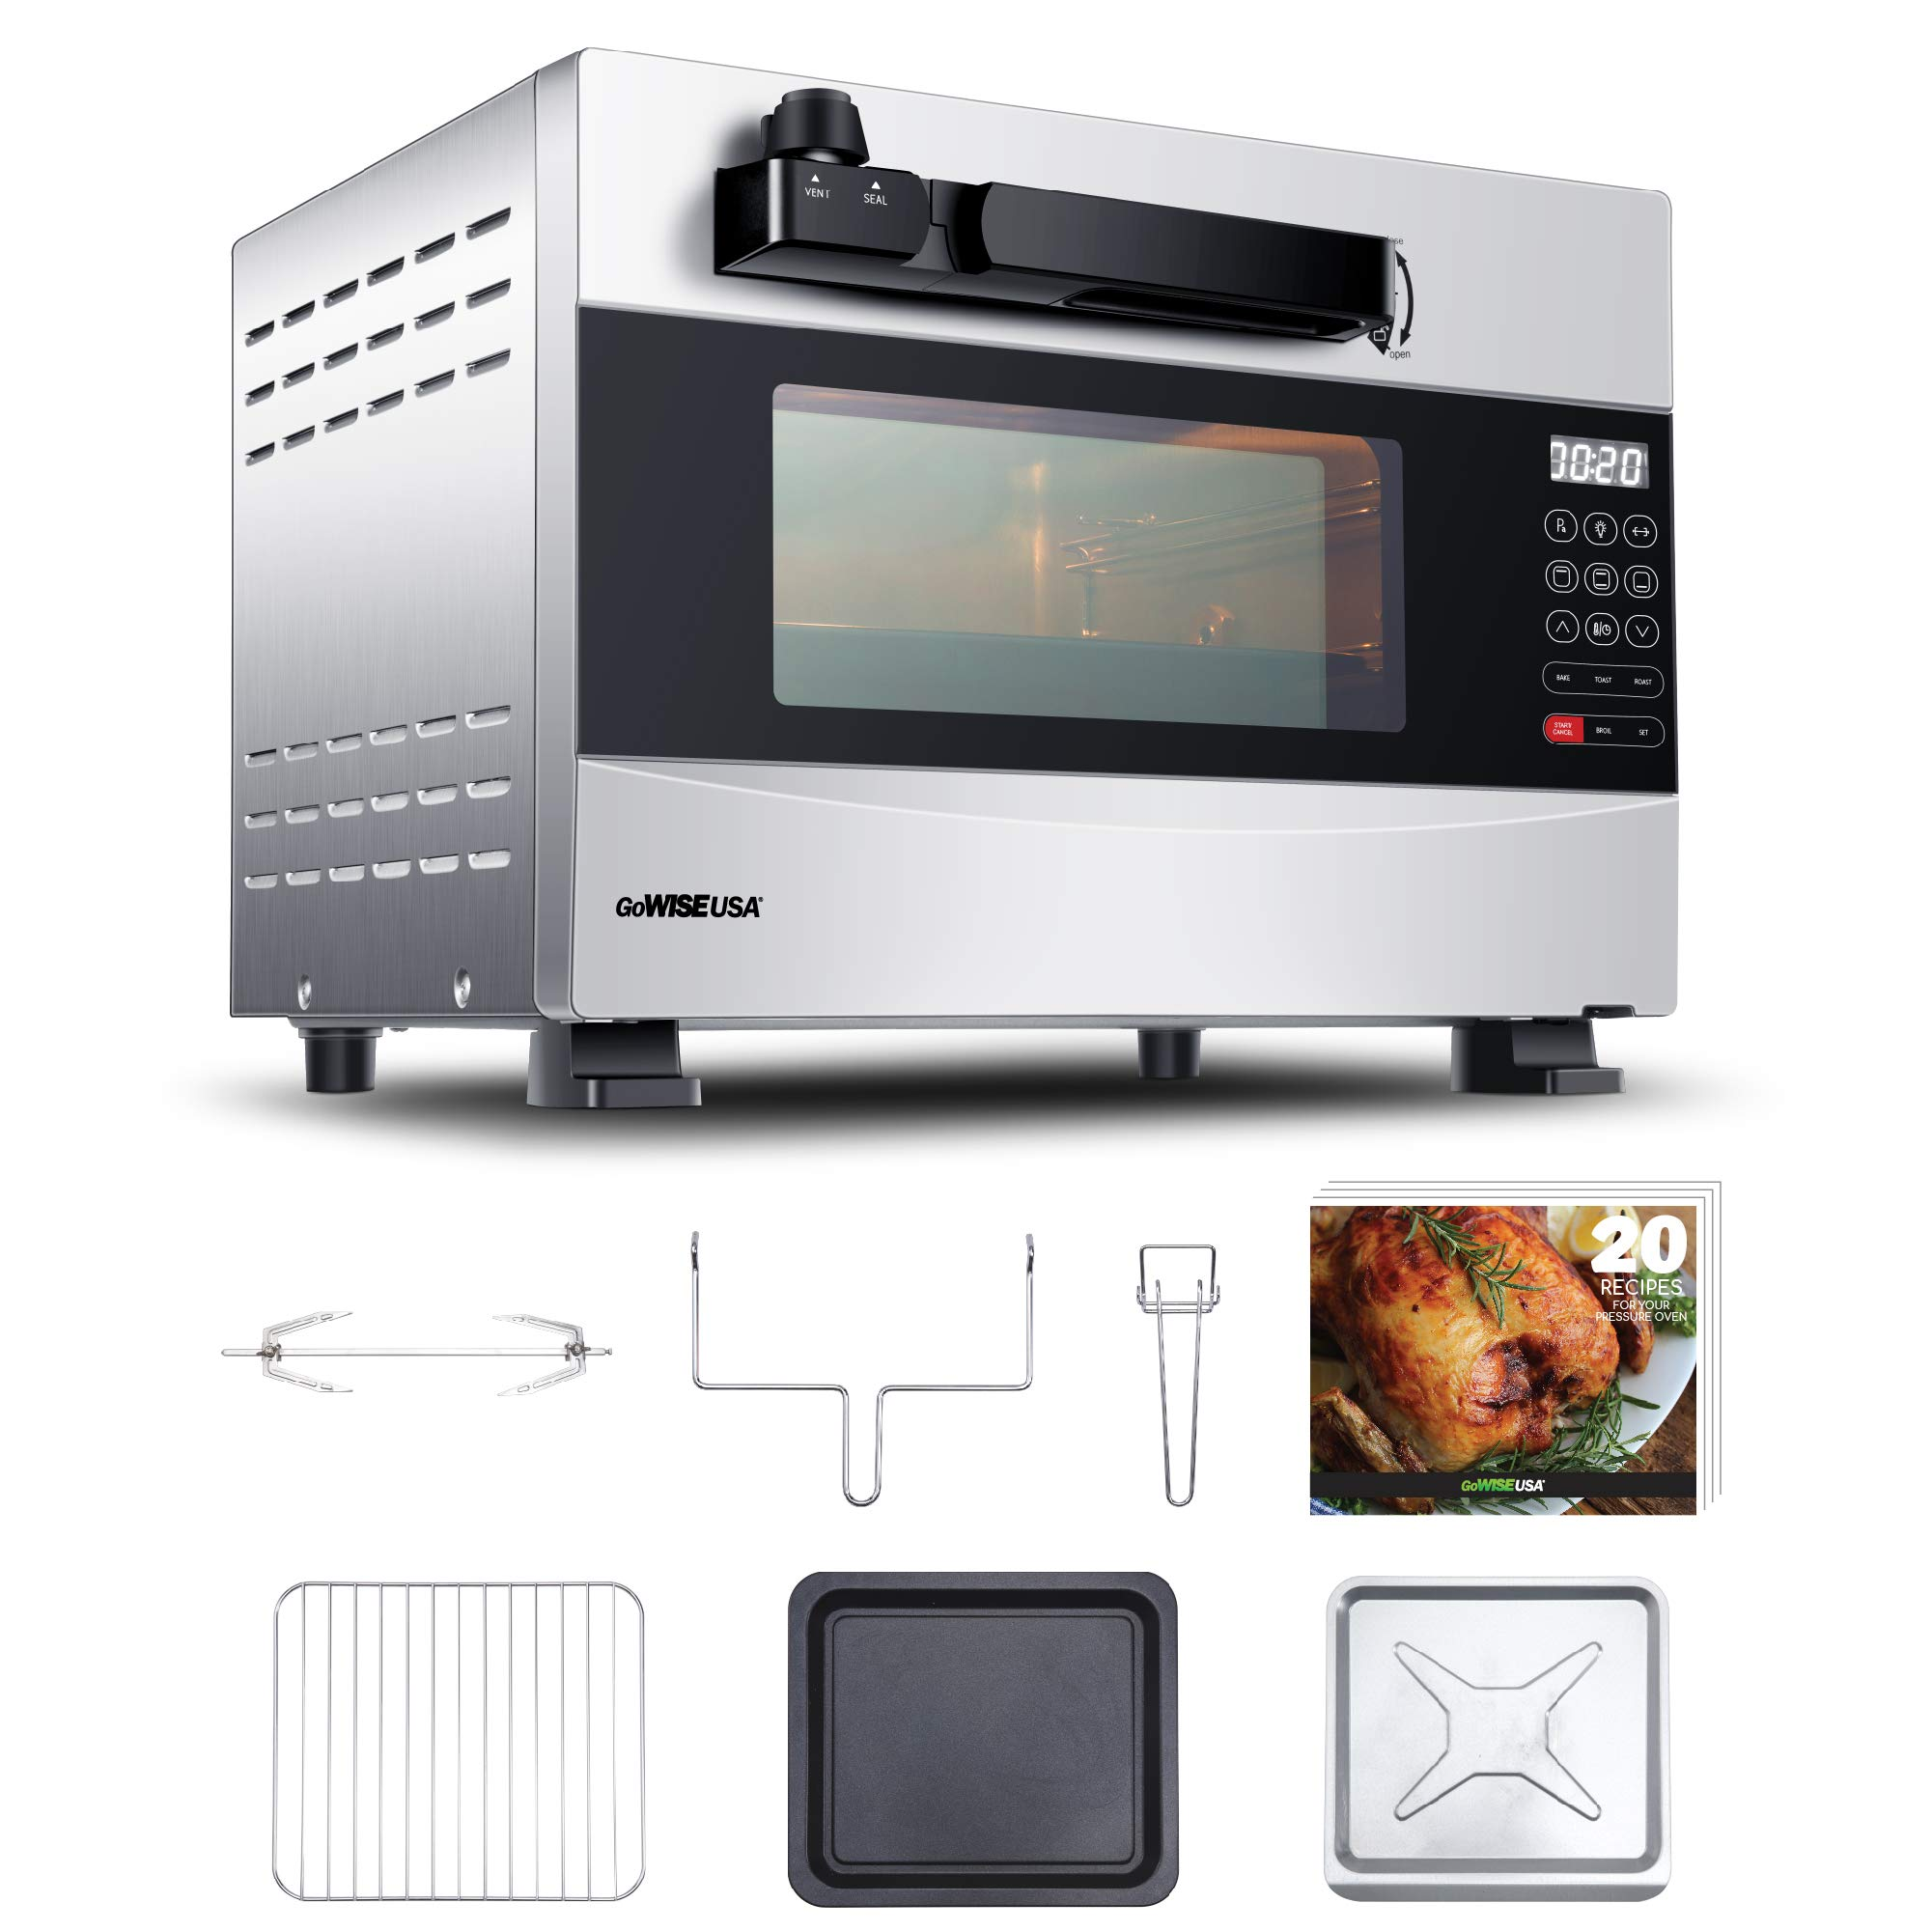 GoWISE USA GW22710 27-Quart Electric Programmable w/Rotisserie + 20 Recipes for Your Pressure Oven (Stainless Steel)